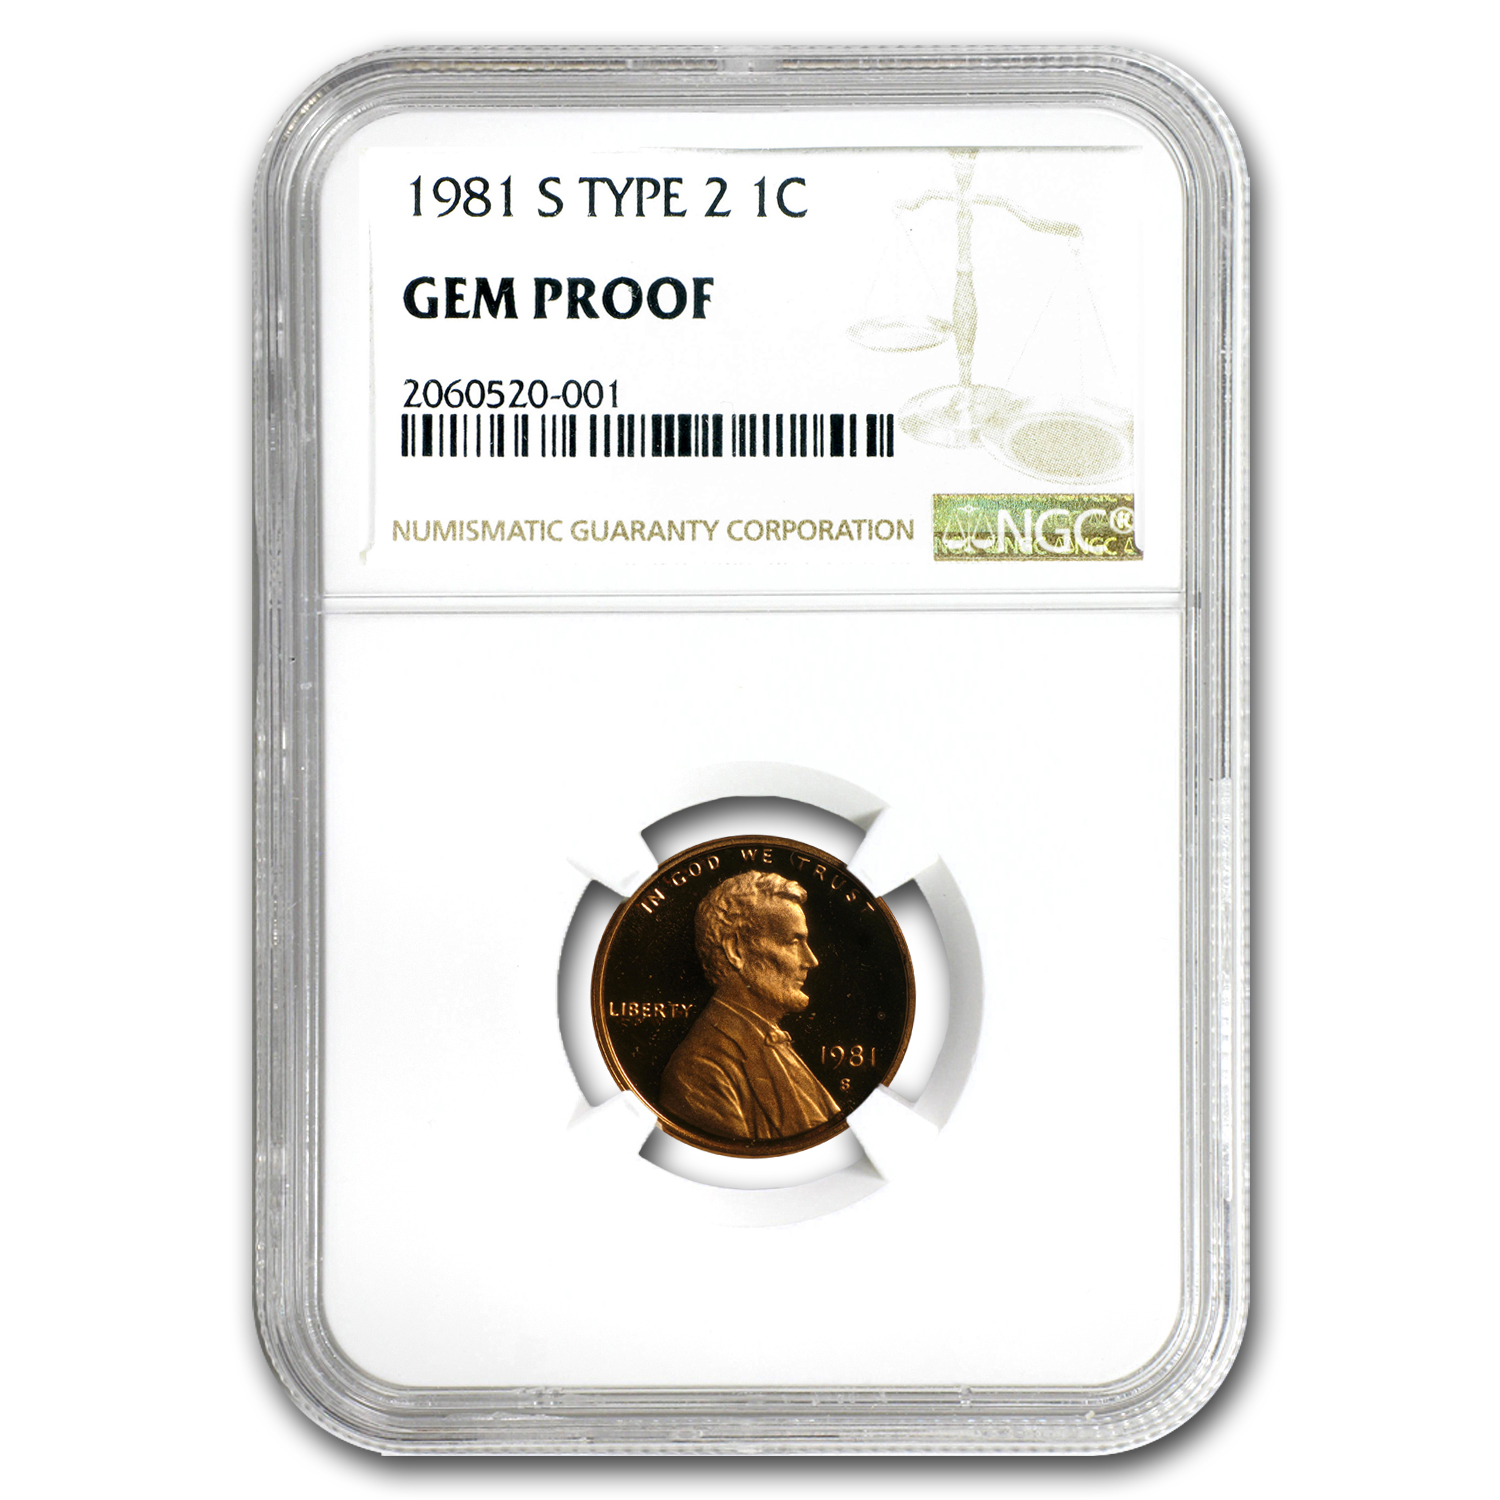 1981 U.S. Proof Set Gem Proof NGC (Type 2, Individual Slabs)